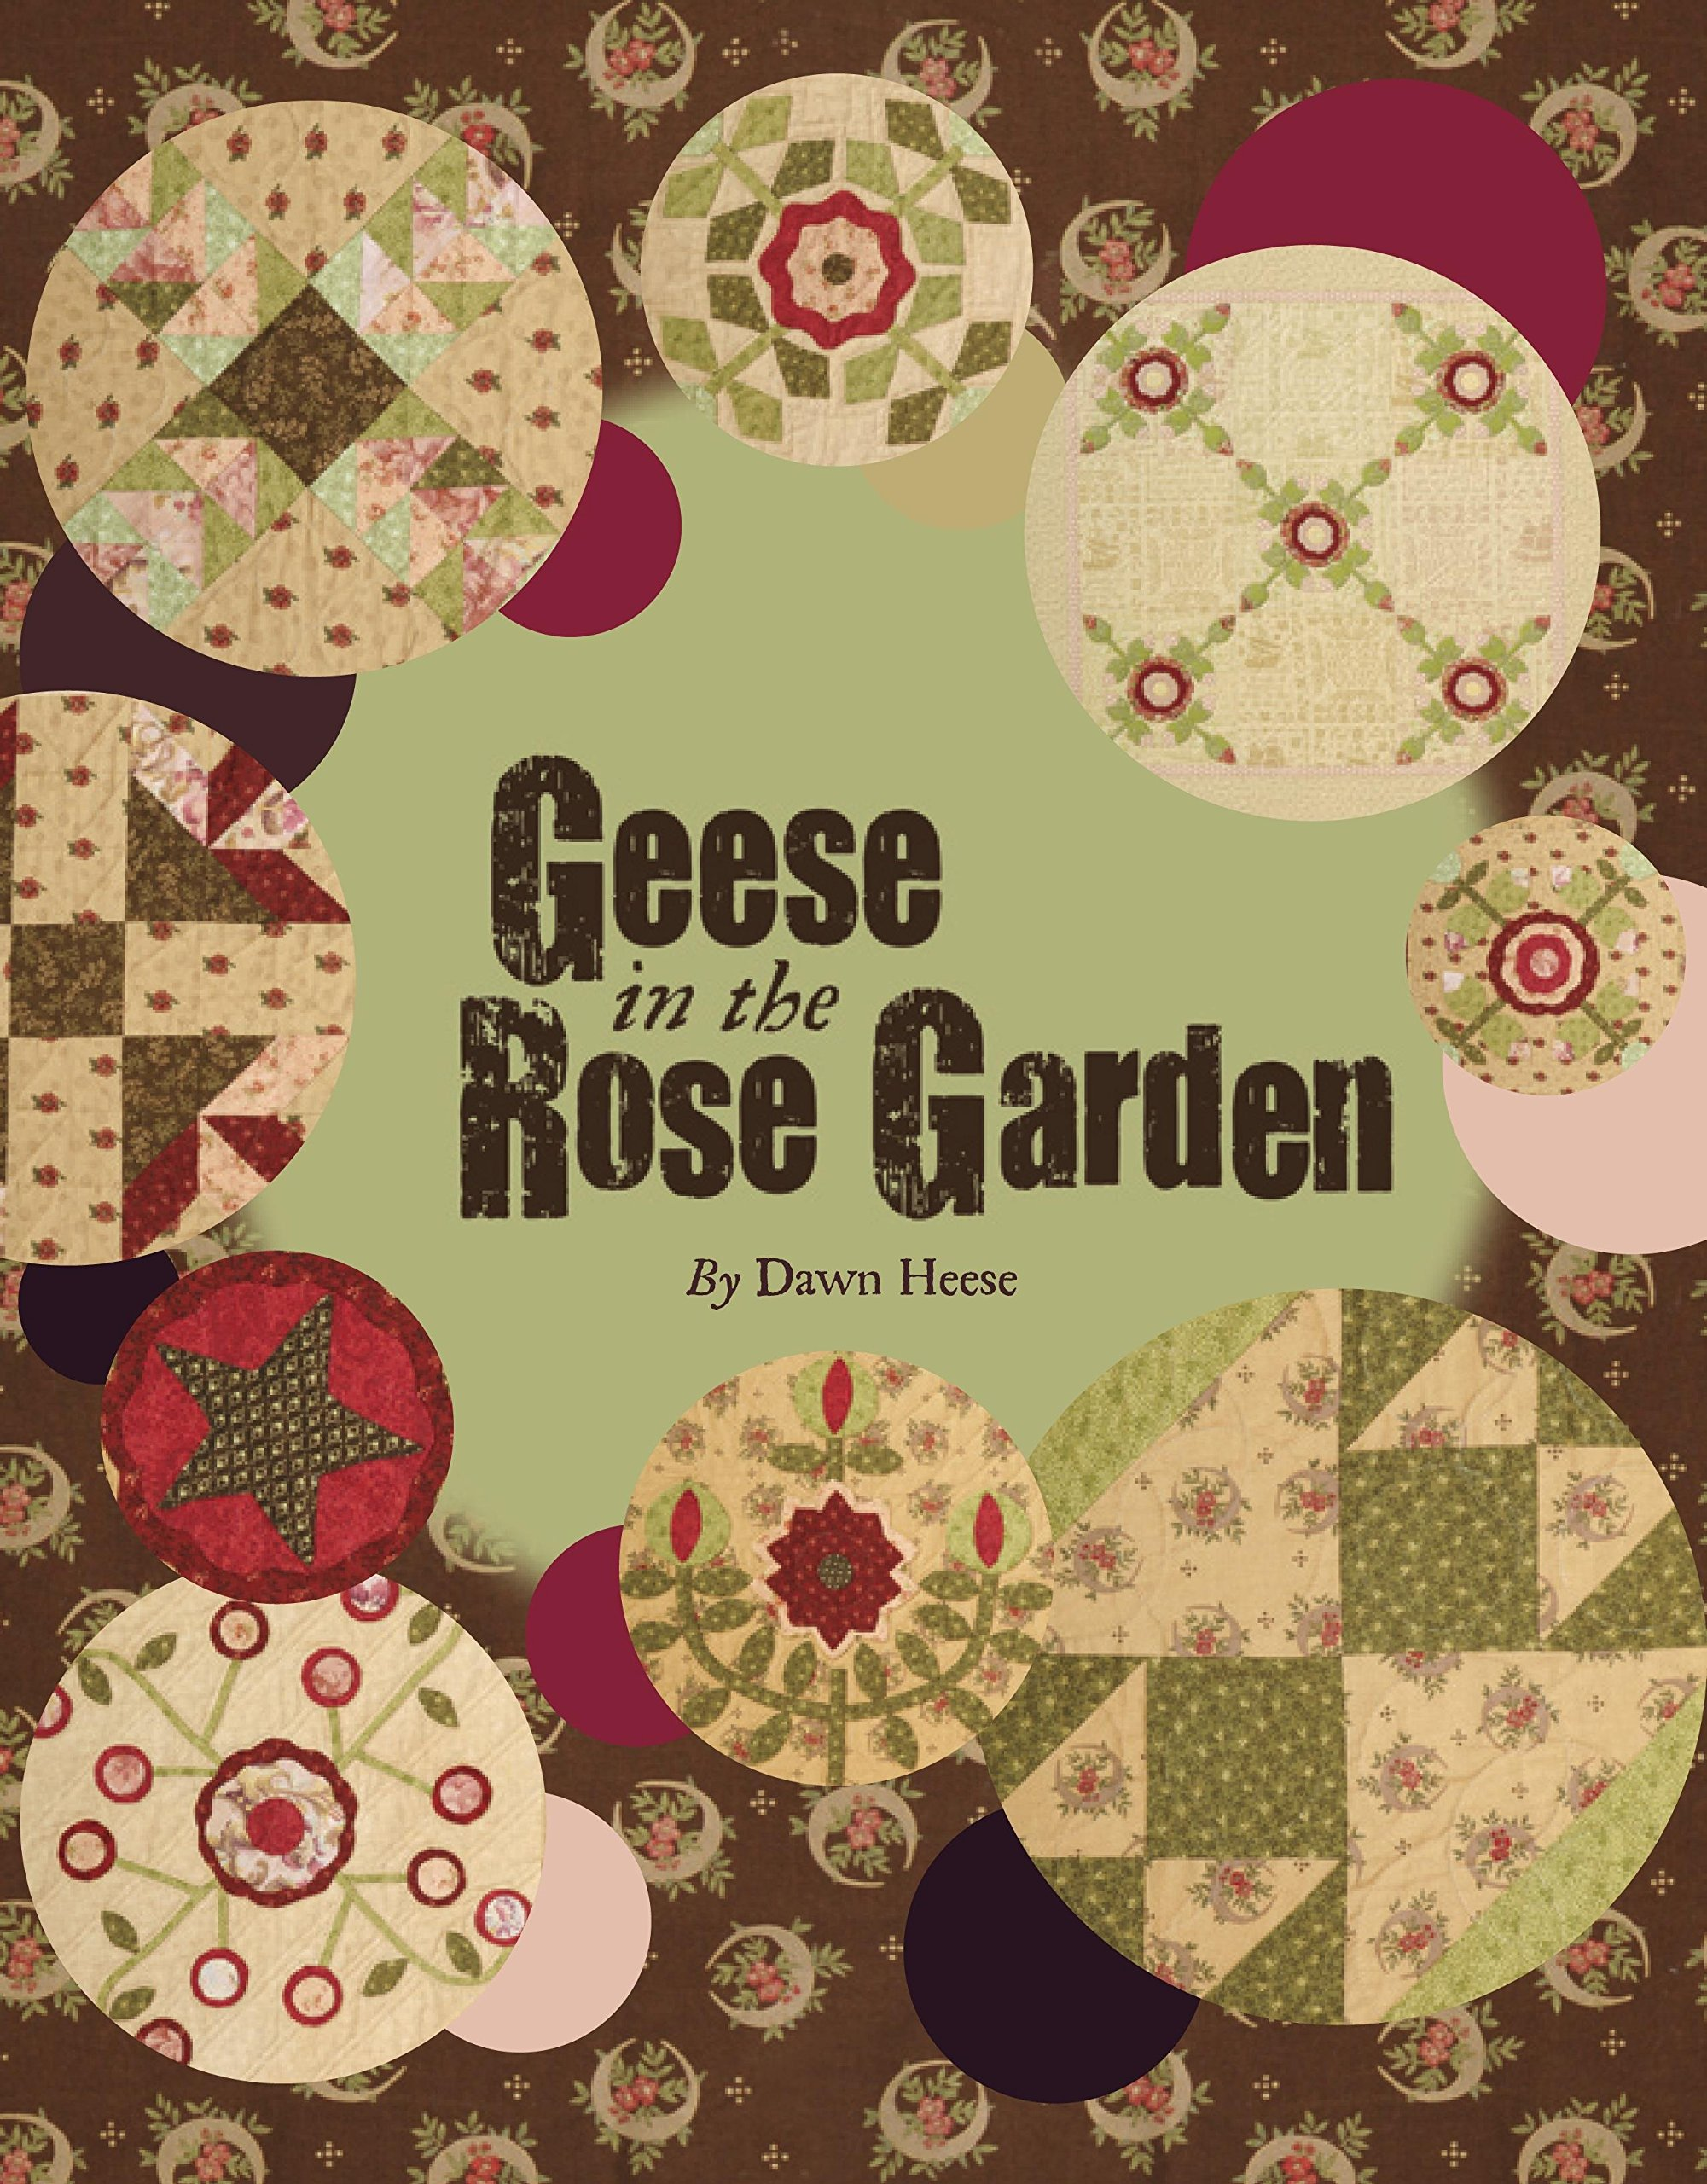 Marvelous Buy Geese In The Rose Garden Book Online At Low Prices In India  With Marvelous Buy Geese In The Rose Garden Book Online At Low Prices In India  Geese In The  Rose Garden Reviews  Ratings  Amazonin With Easy On The Eye Lost Gardens Of Heligon Also Garden Furniture Sale Uk John Lewis In Addition Waterproof Garden Lights And Street Map Of Covent Garden As Well As Plastic Garden Fencing Additionally Bamboo For Garden From Amazonin With   Marvelous Buy Geese In The Rose Garden Book Online At Low Prices In India  With Easy On The Eye Buy Geese In The Rose Garden Book Online At Low Prices In India  Geese In The  Rose Garden Reviews  Ratings  Amazonin And Marvelous Lost Gardens Of Heligon Also Garden Furniture Sale Uk John Lewis In Addition Waterproof Garden Lights From Amazonin